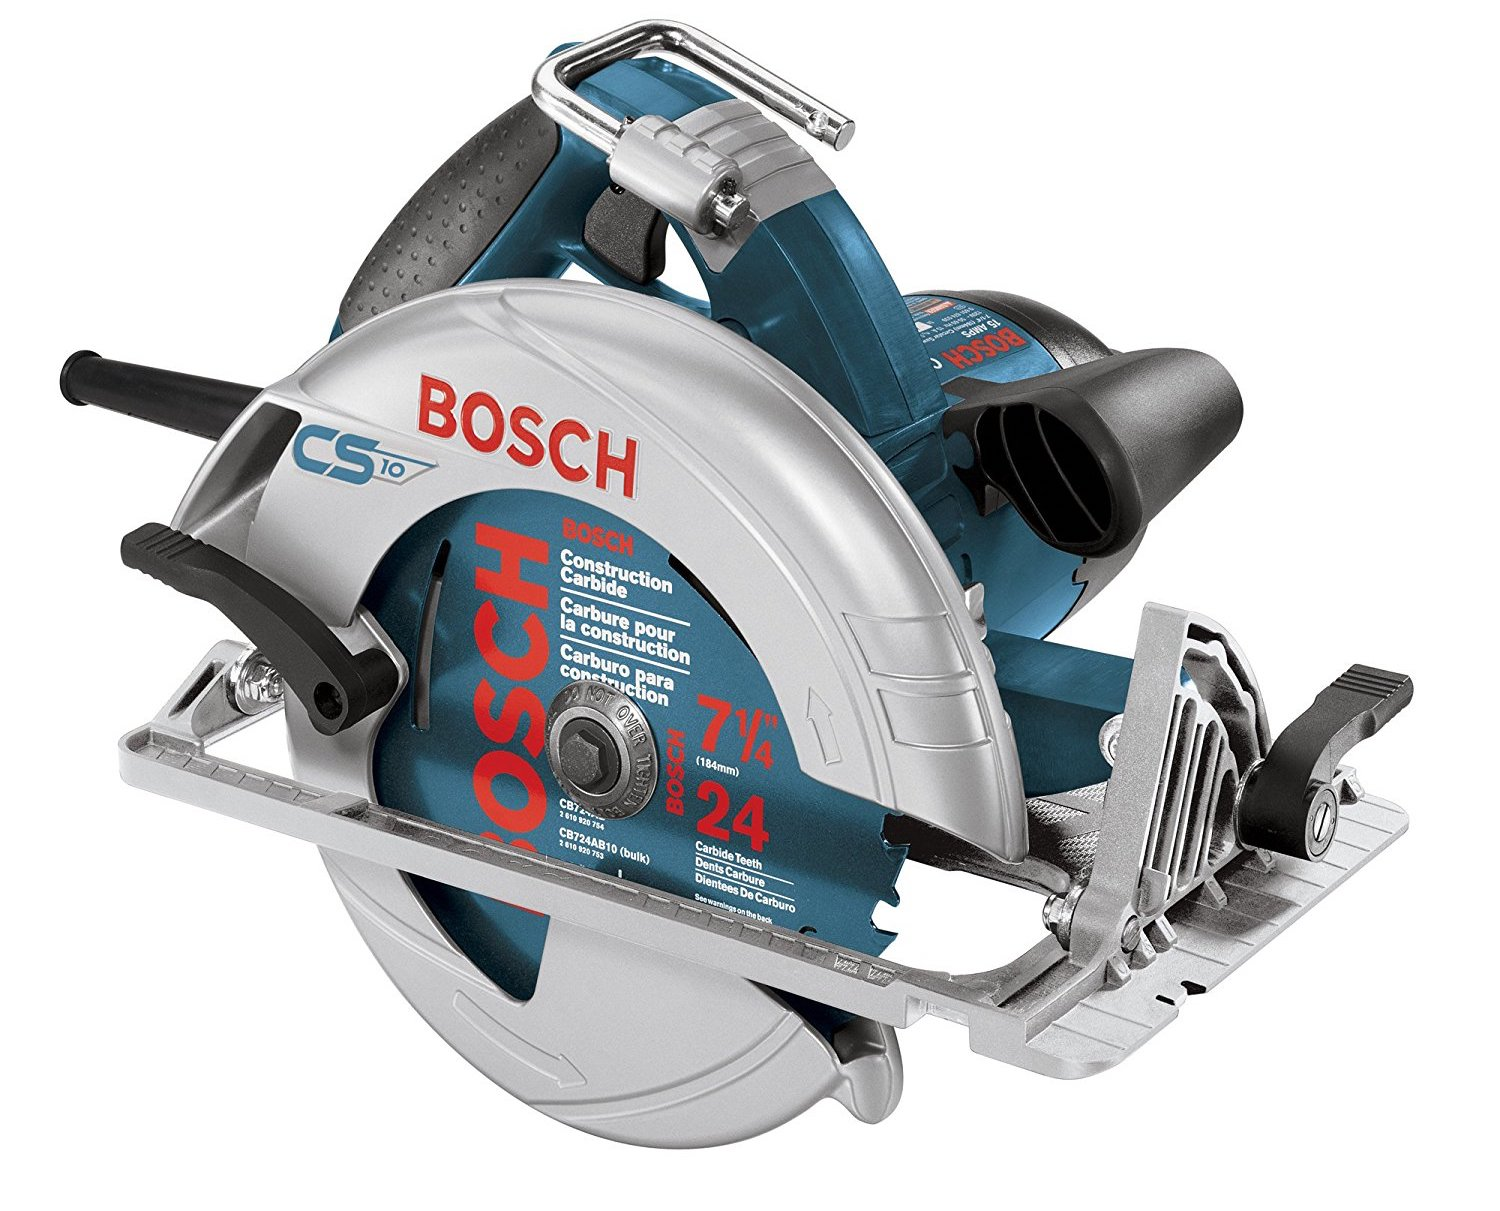 Top 5 Best Circular Saw for Woodworking Review